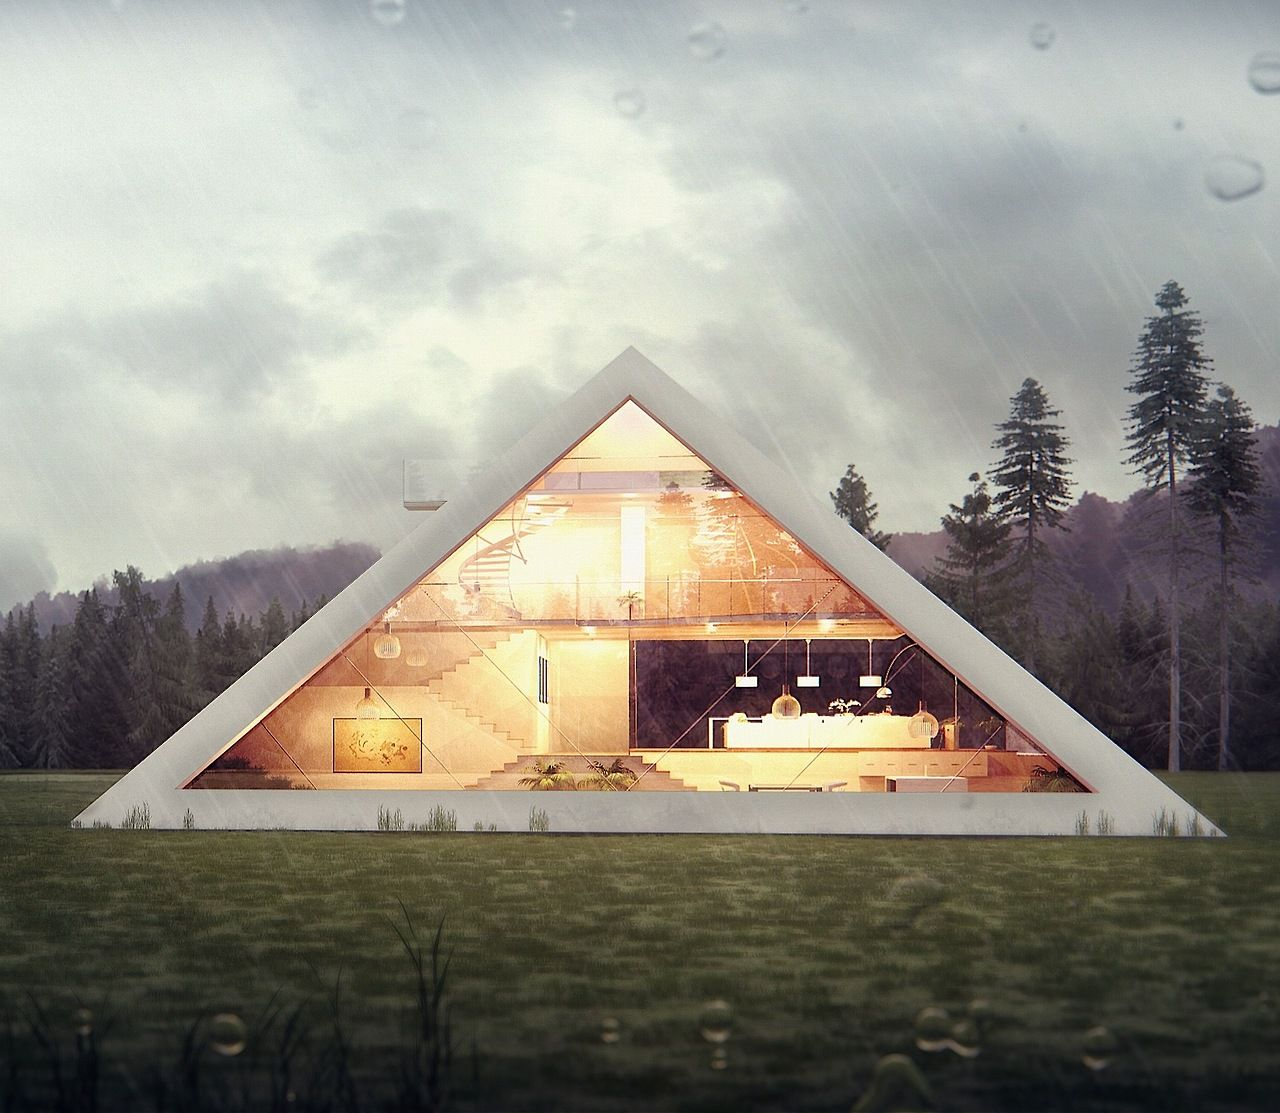 Pyramid House by Juan Carlos Ramos Juan Carlos Ramos's last architectural visualization project, this house was designed for an architectural competition. ARCHITECT / Digital Artist: Juan Carlos Ramos, Michoacan, MexicoDESCRIPTION: residentialSTATUS: Design PhaseDATE: 2013 DESIGN: Juan Carlos RamosDRAWINGS / IMAGES: Juan Carlos Ramos.